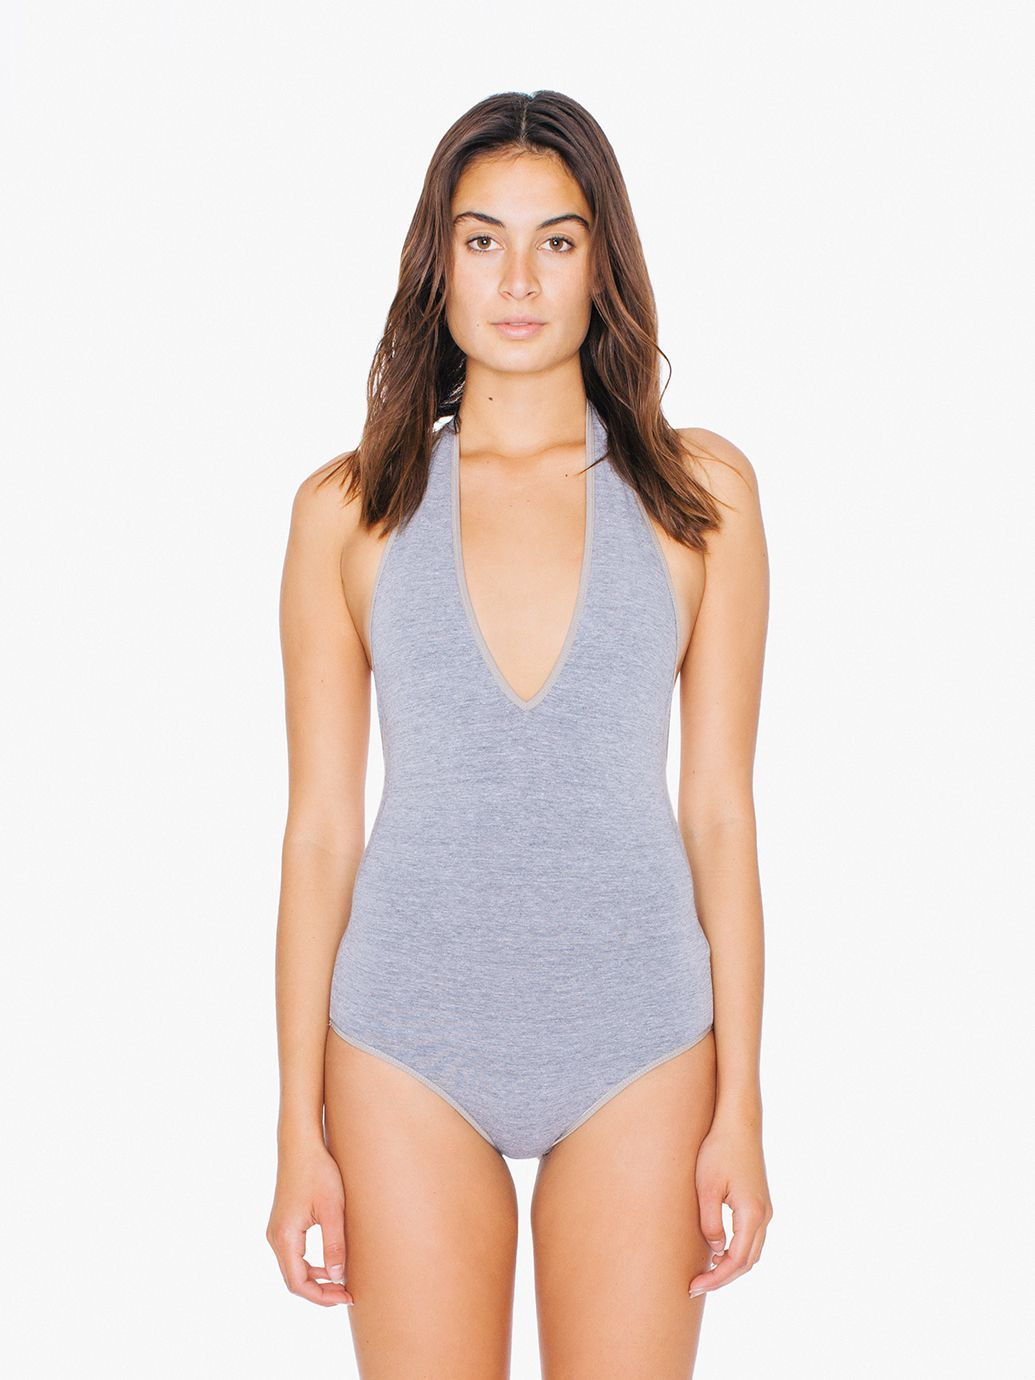 Halter bodysuit featuring a low cut V-neck and open back. In the color black 9f16cf1f8